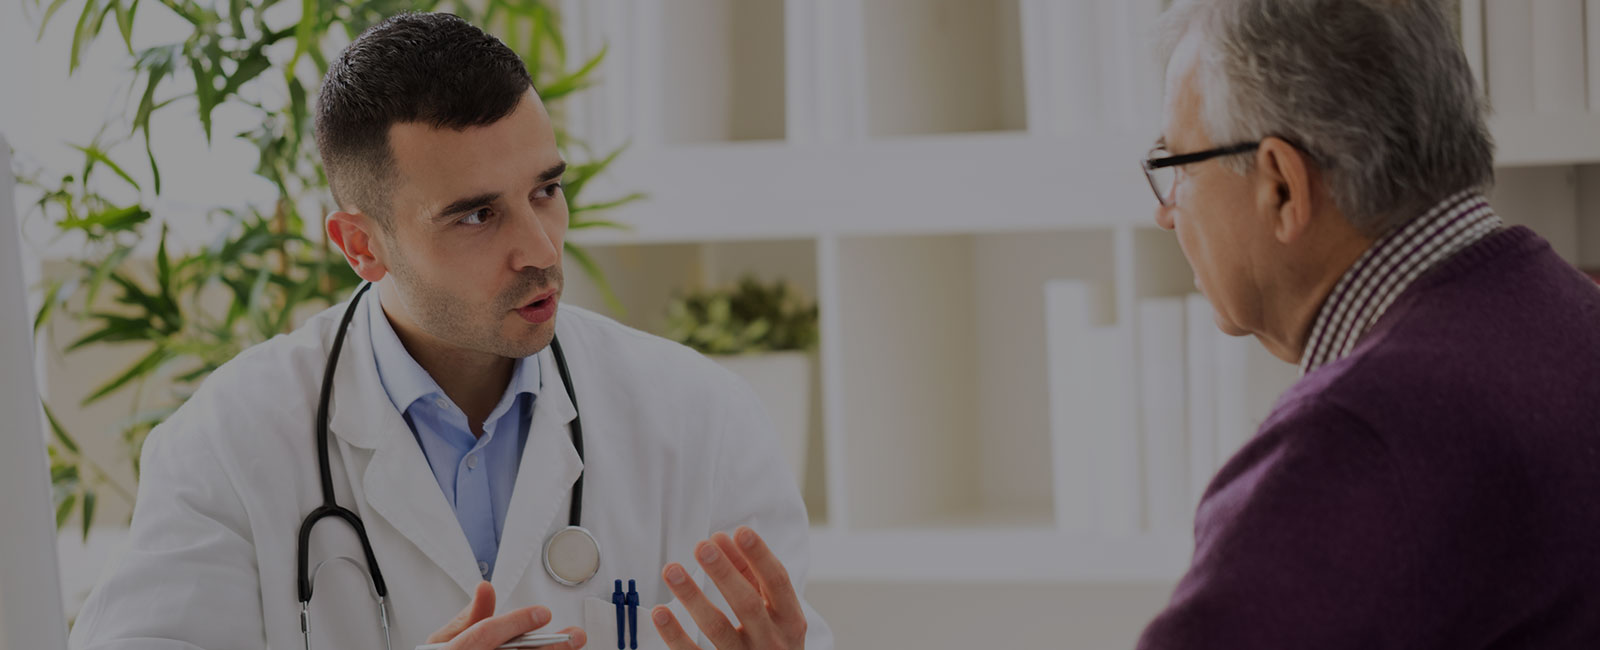 ent physician talking to patient